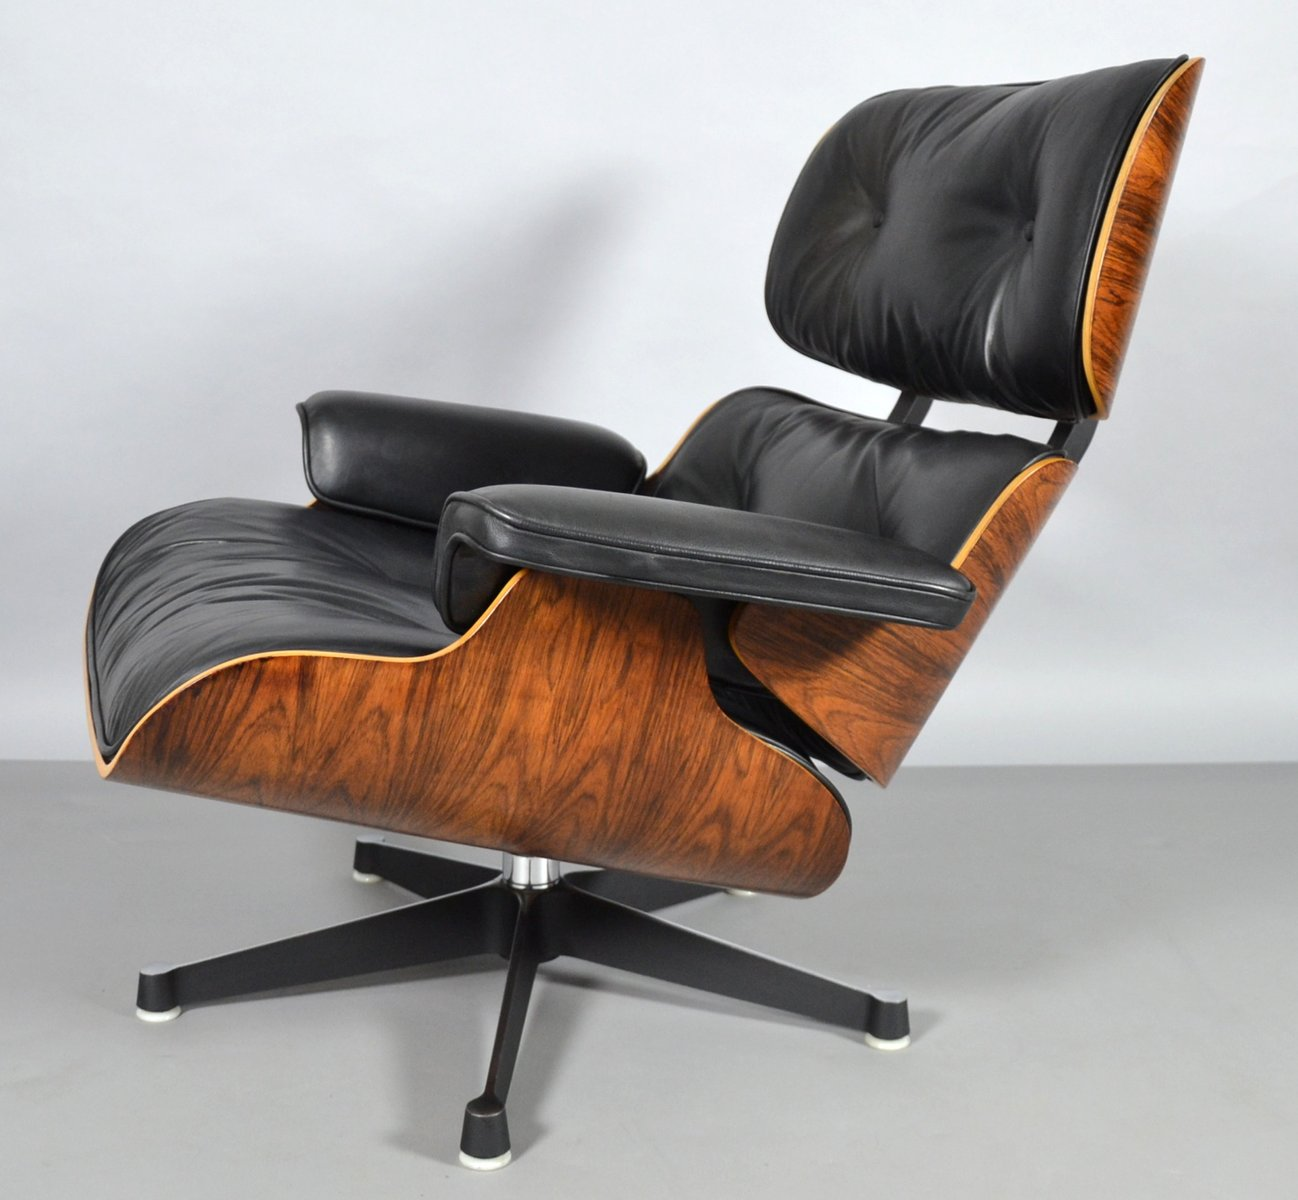 Sessel Charles Eames Sessel And Fußhocker Von Charles And Ray Eames Für Vitra